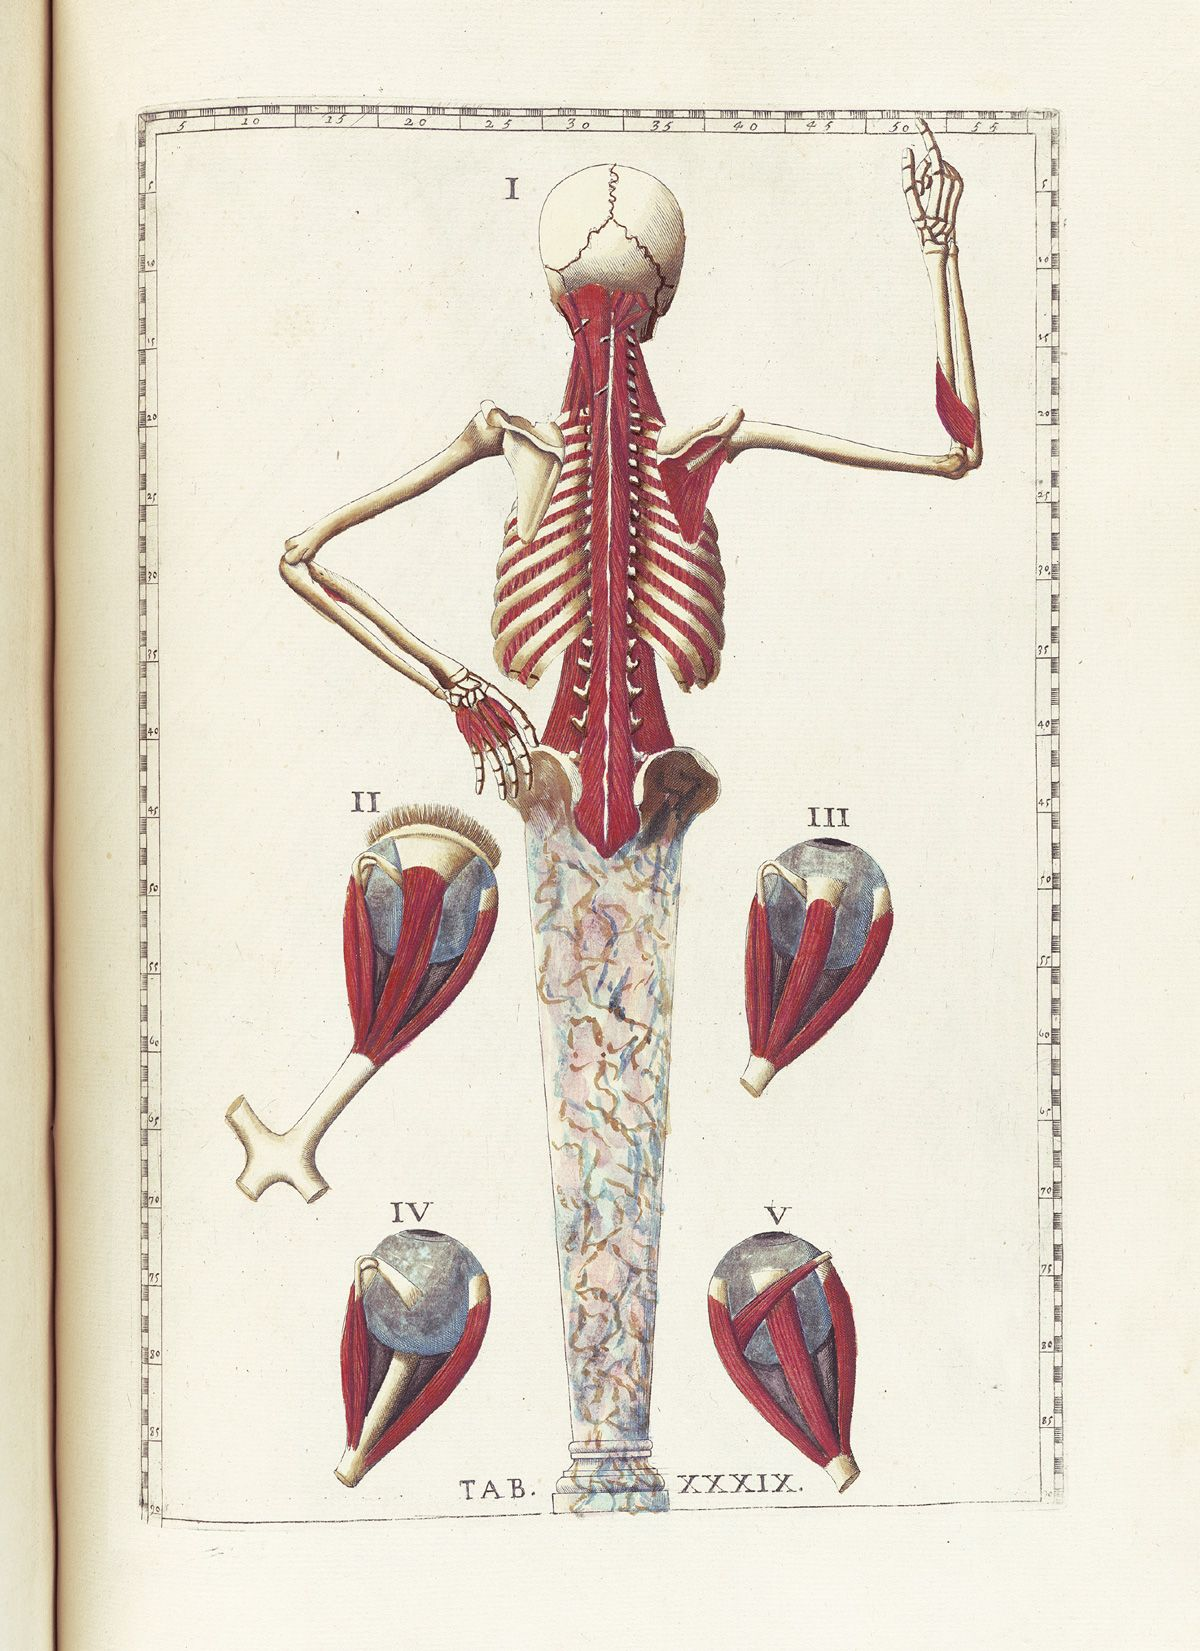 An Alphabet Of Anatomical Emotions And Feelings